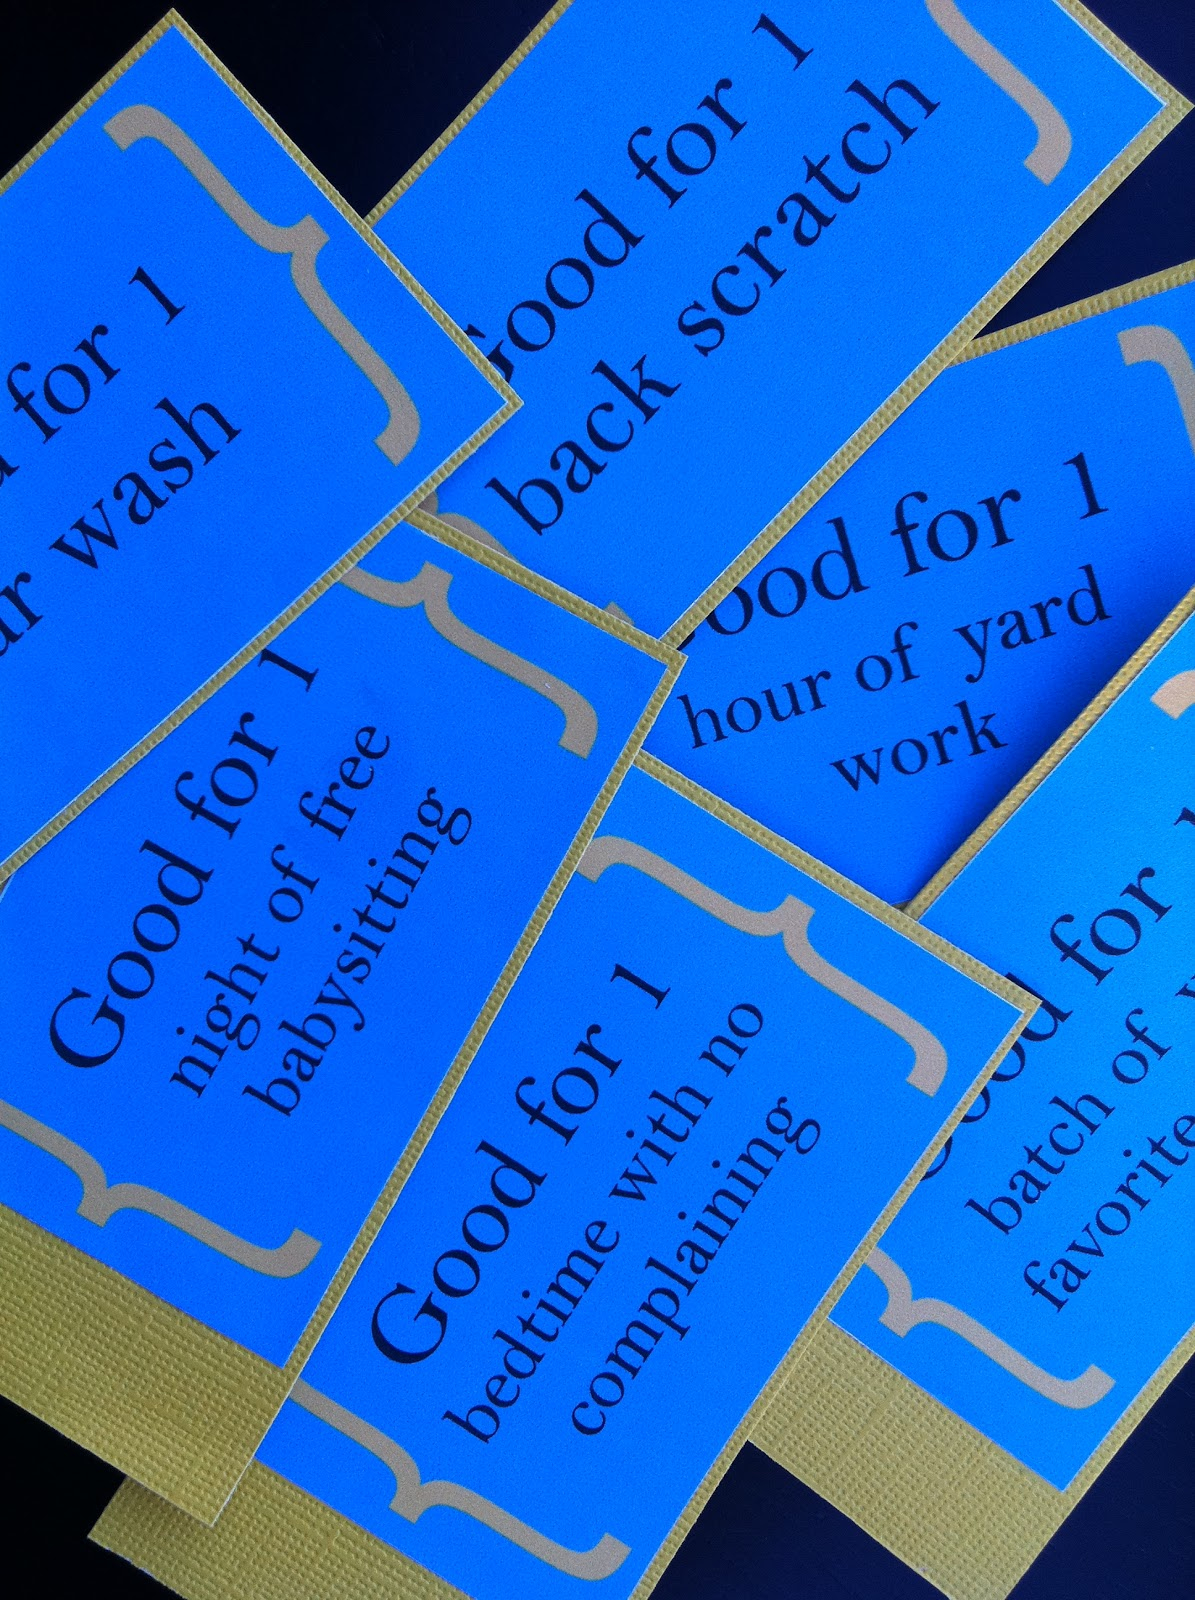 utah county mom fathers day ideas good for one coupons i came up a template using microsoft publisher printed it out glued it to colored card stock and stapled them together adding some ribbon at the